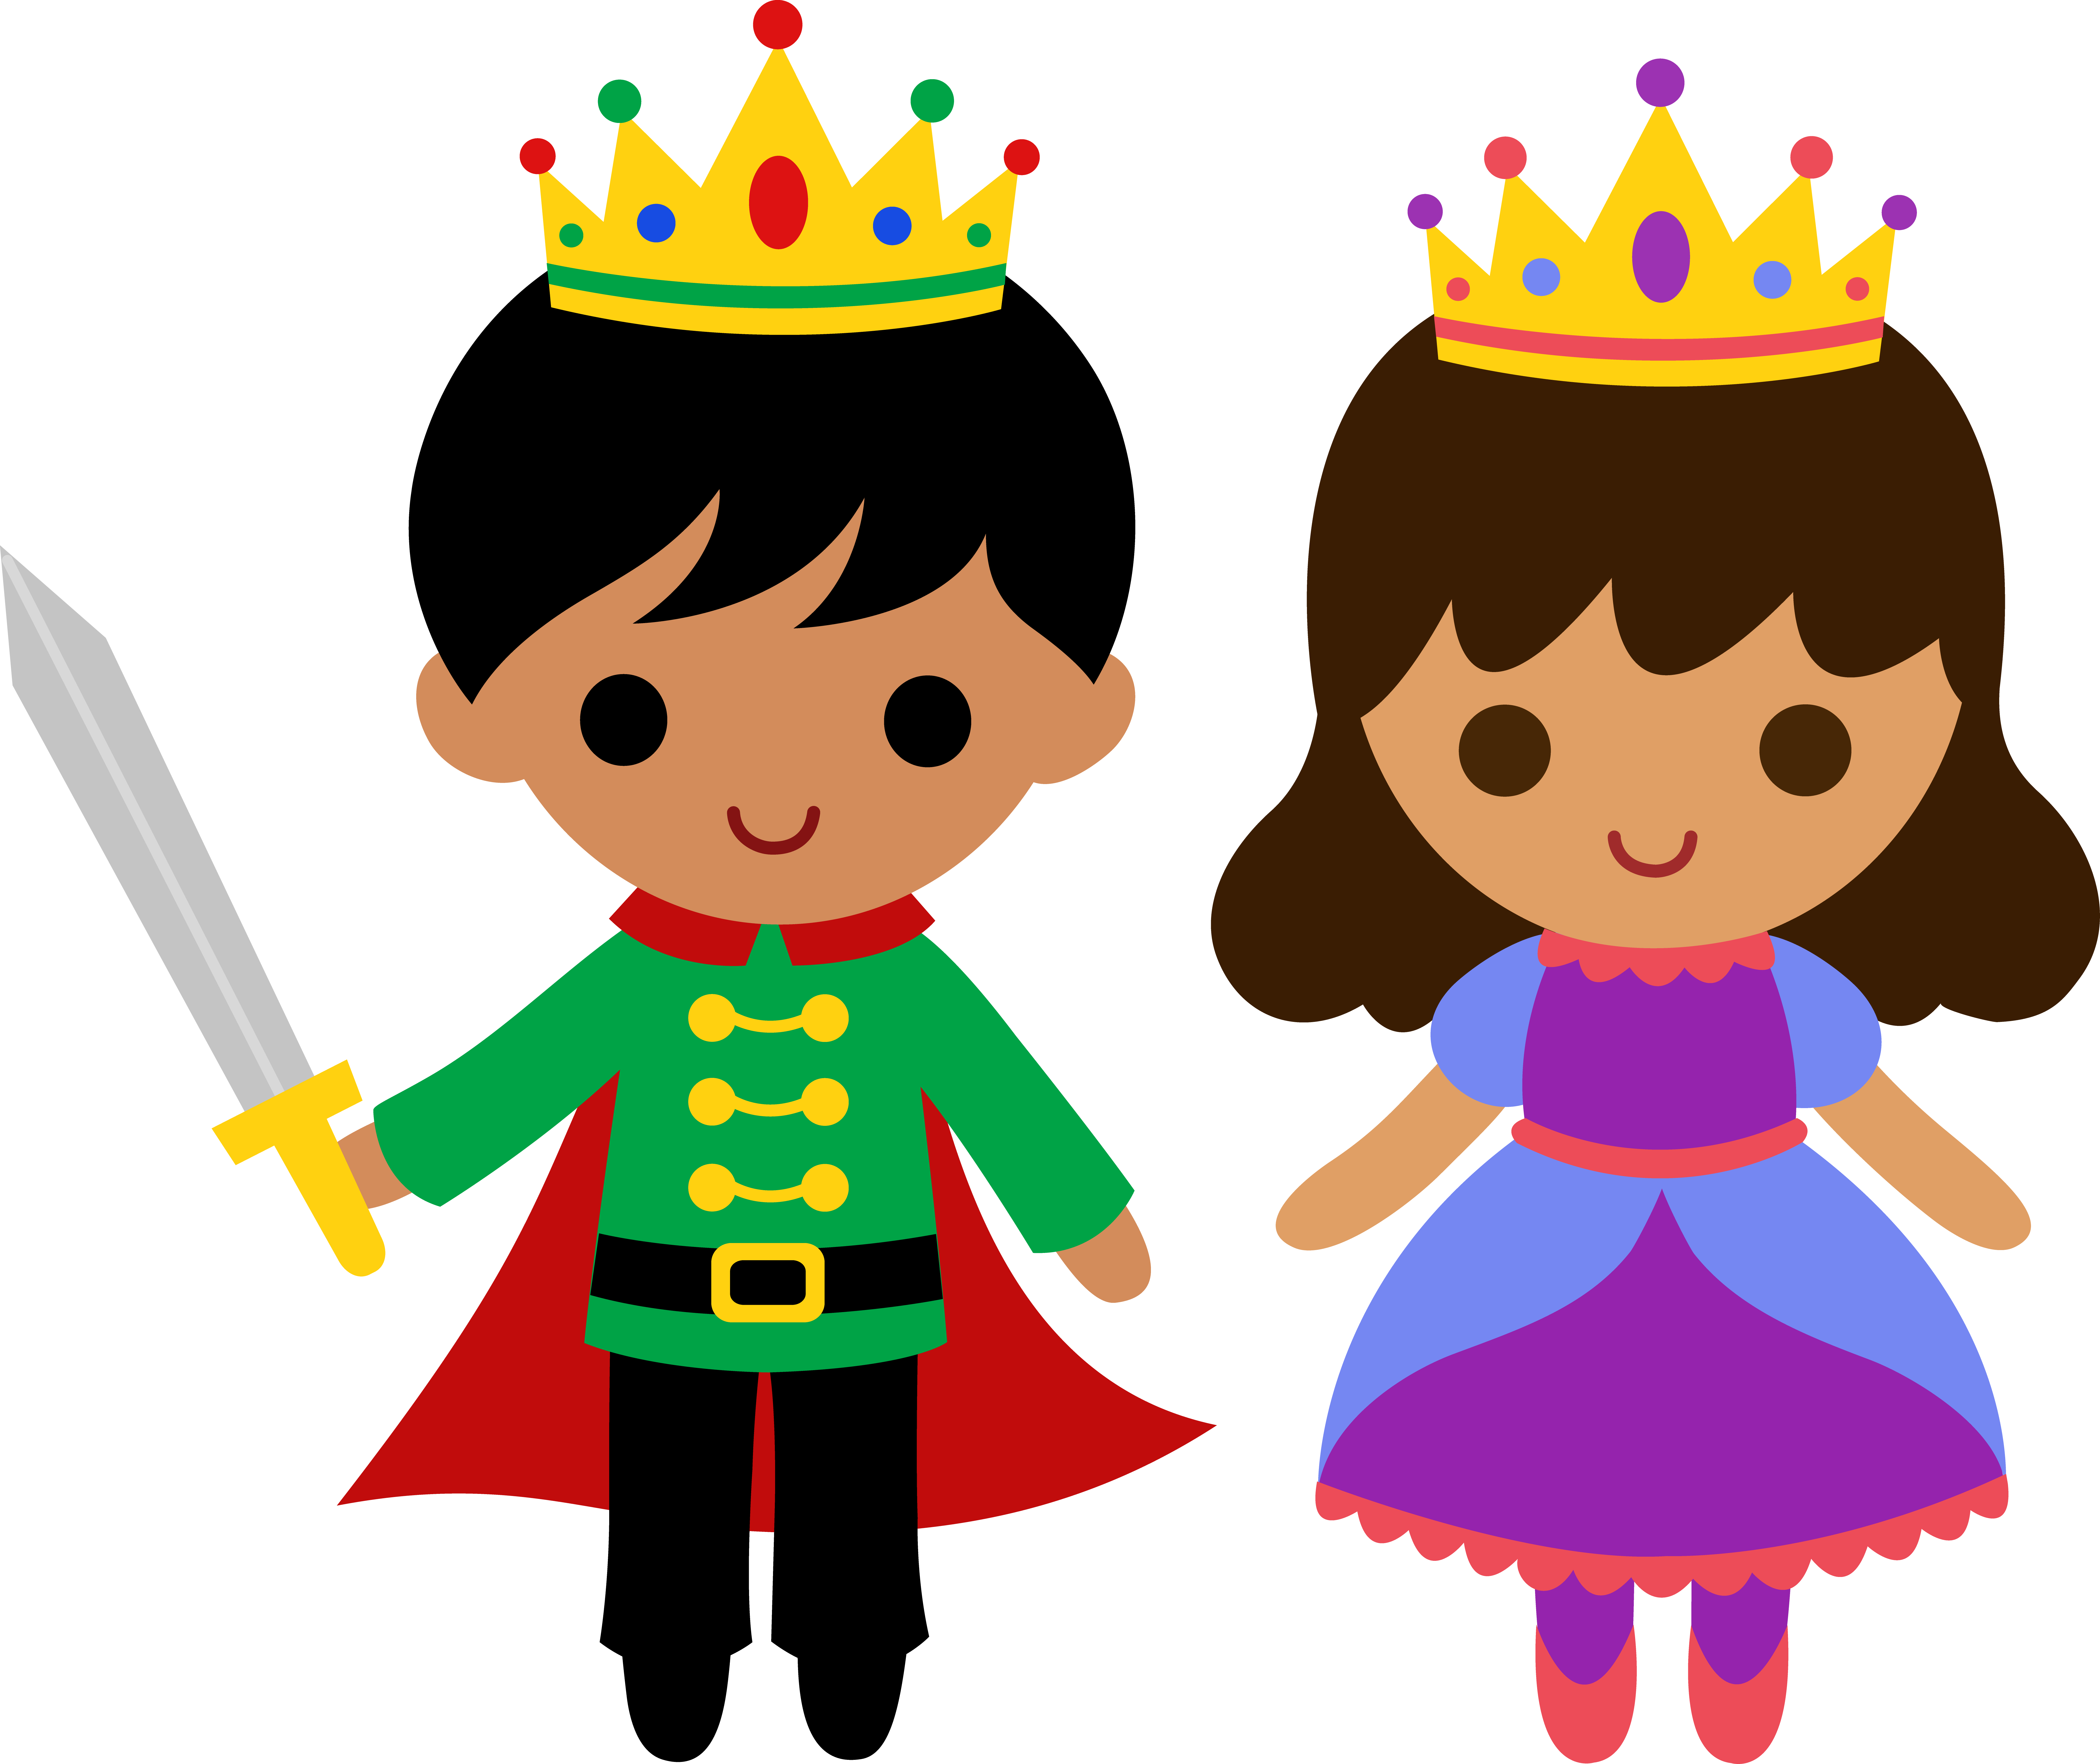 Prince and princess crown clipart library Cute Prince and Princess 2 - Free Clip Art library